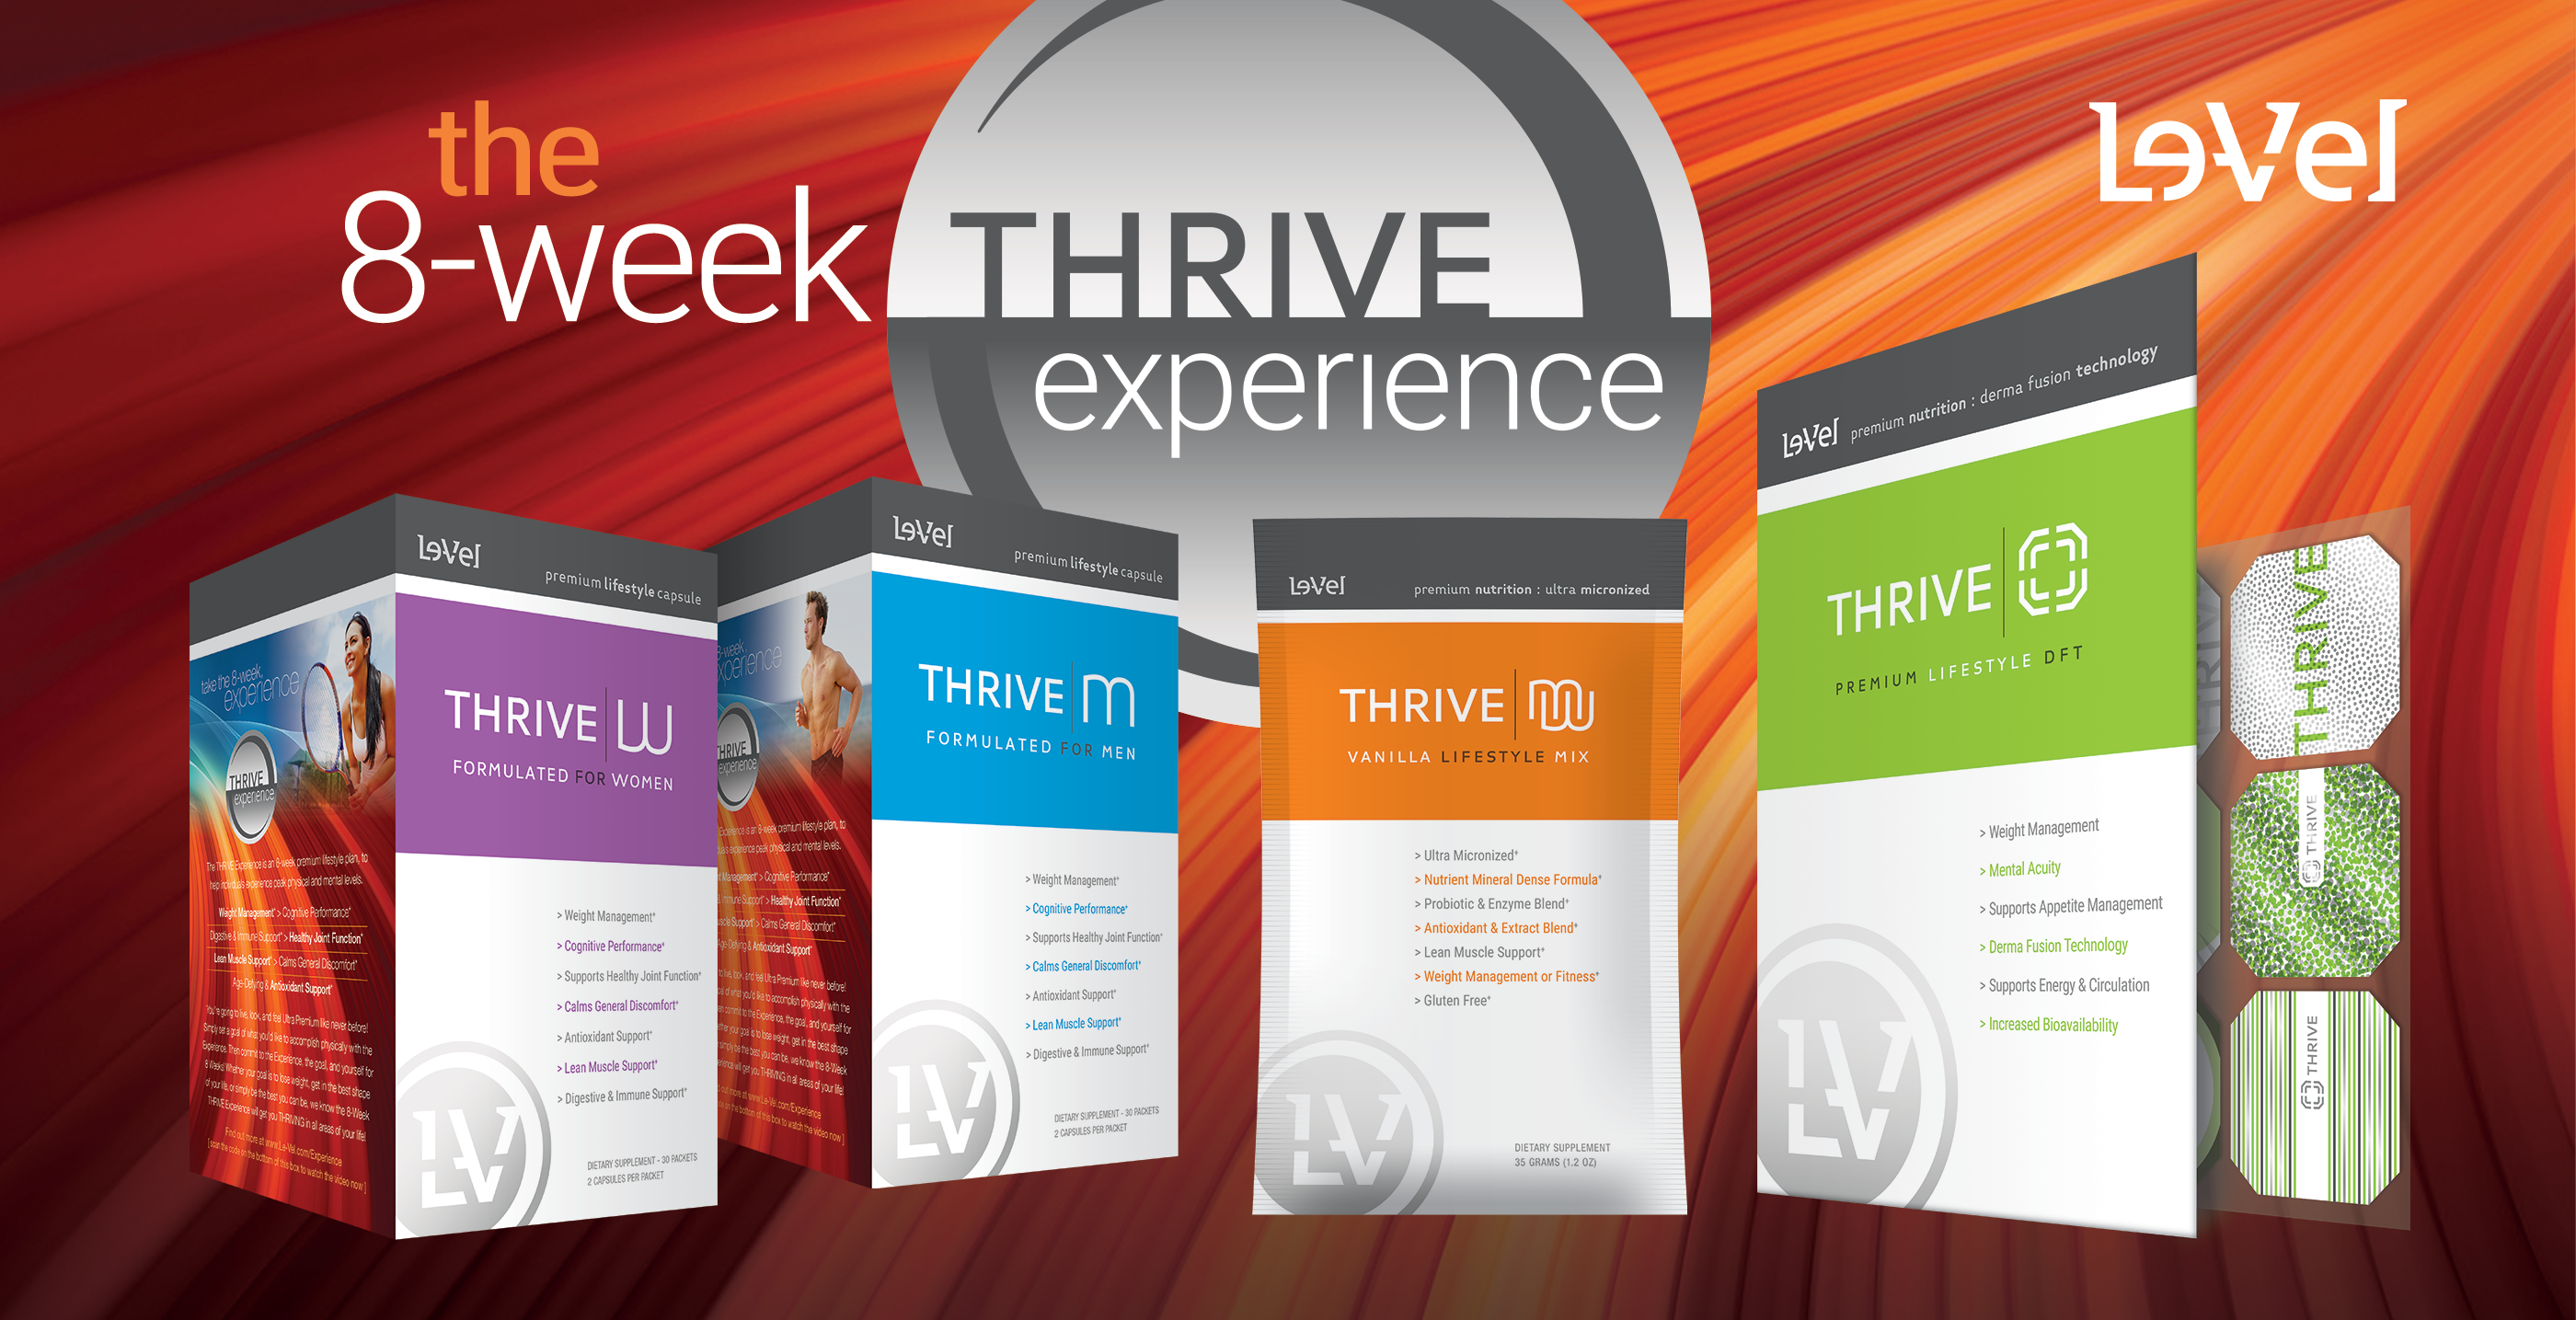 Le Vel Thrive Reviews Strivin And Thrivin With Le Vel Thrive